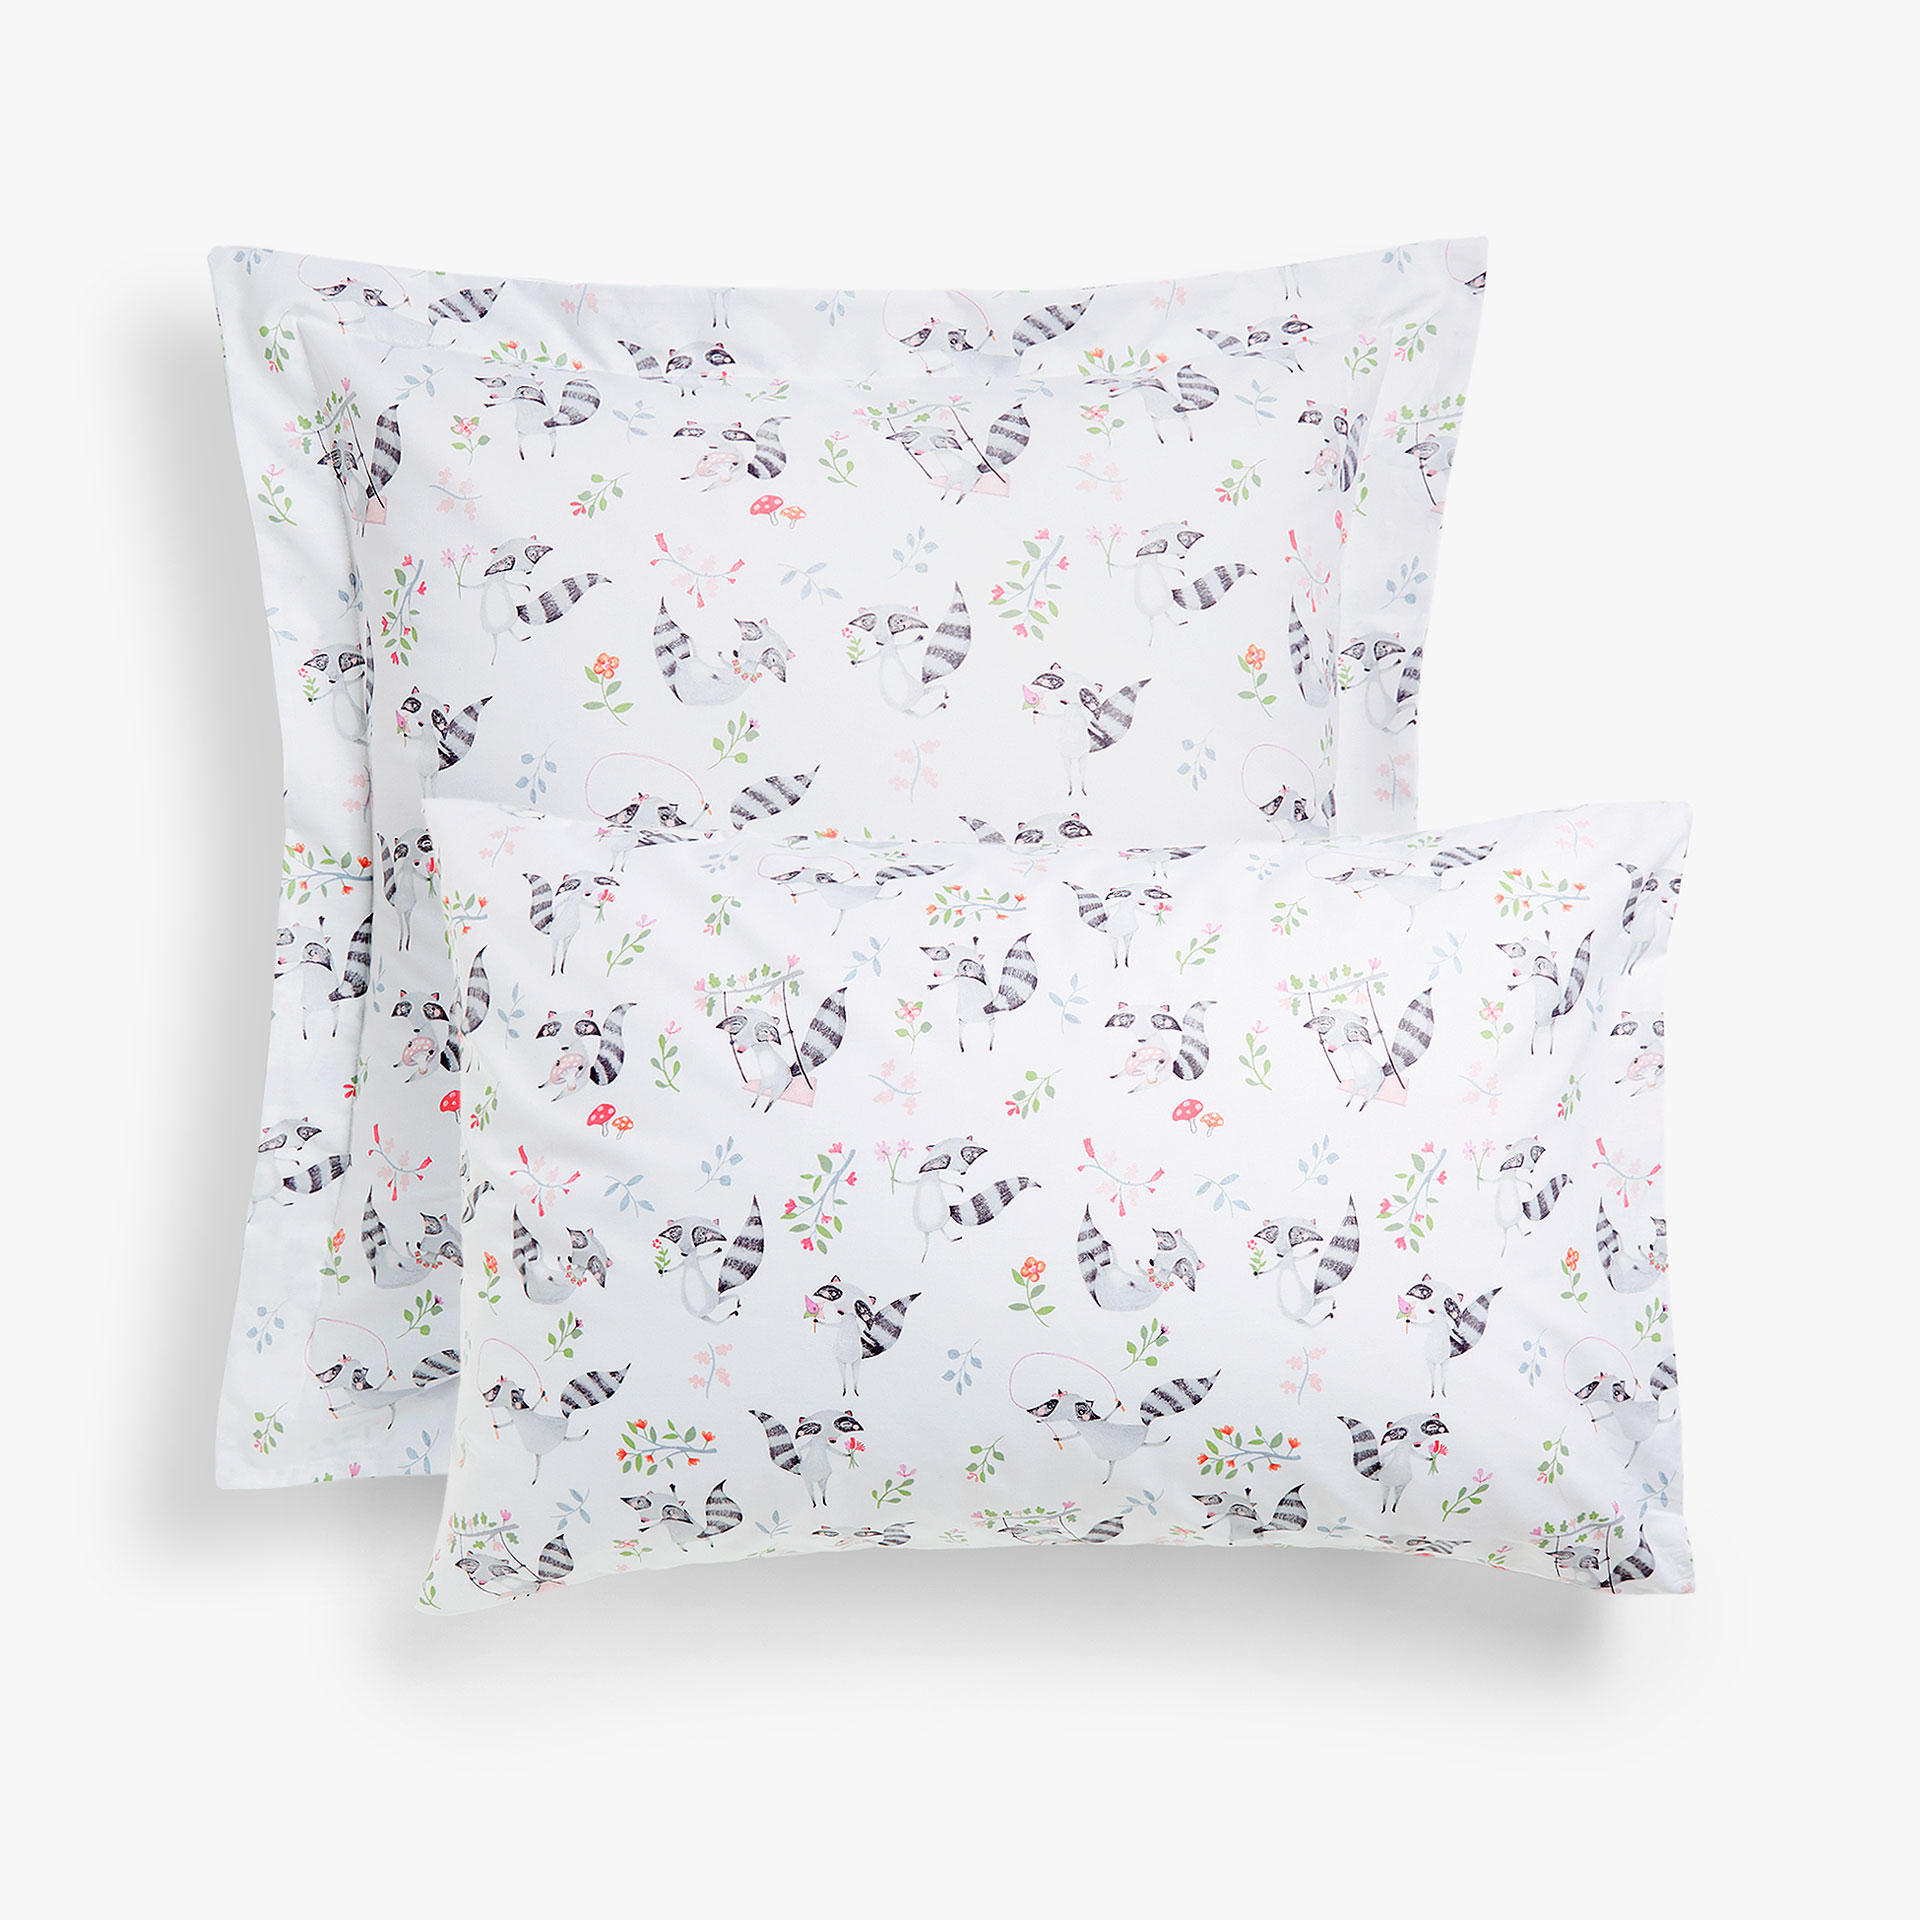 raccoon print pillowcase pillow cases bedroom kids zara